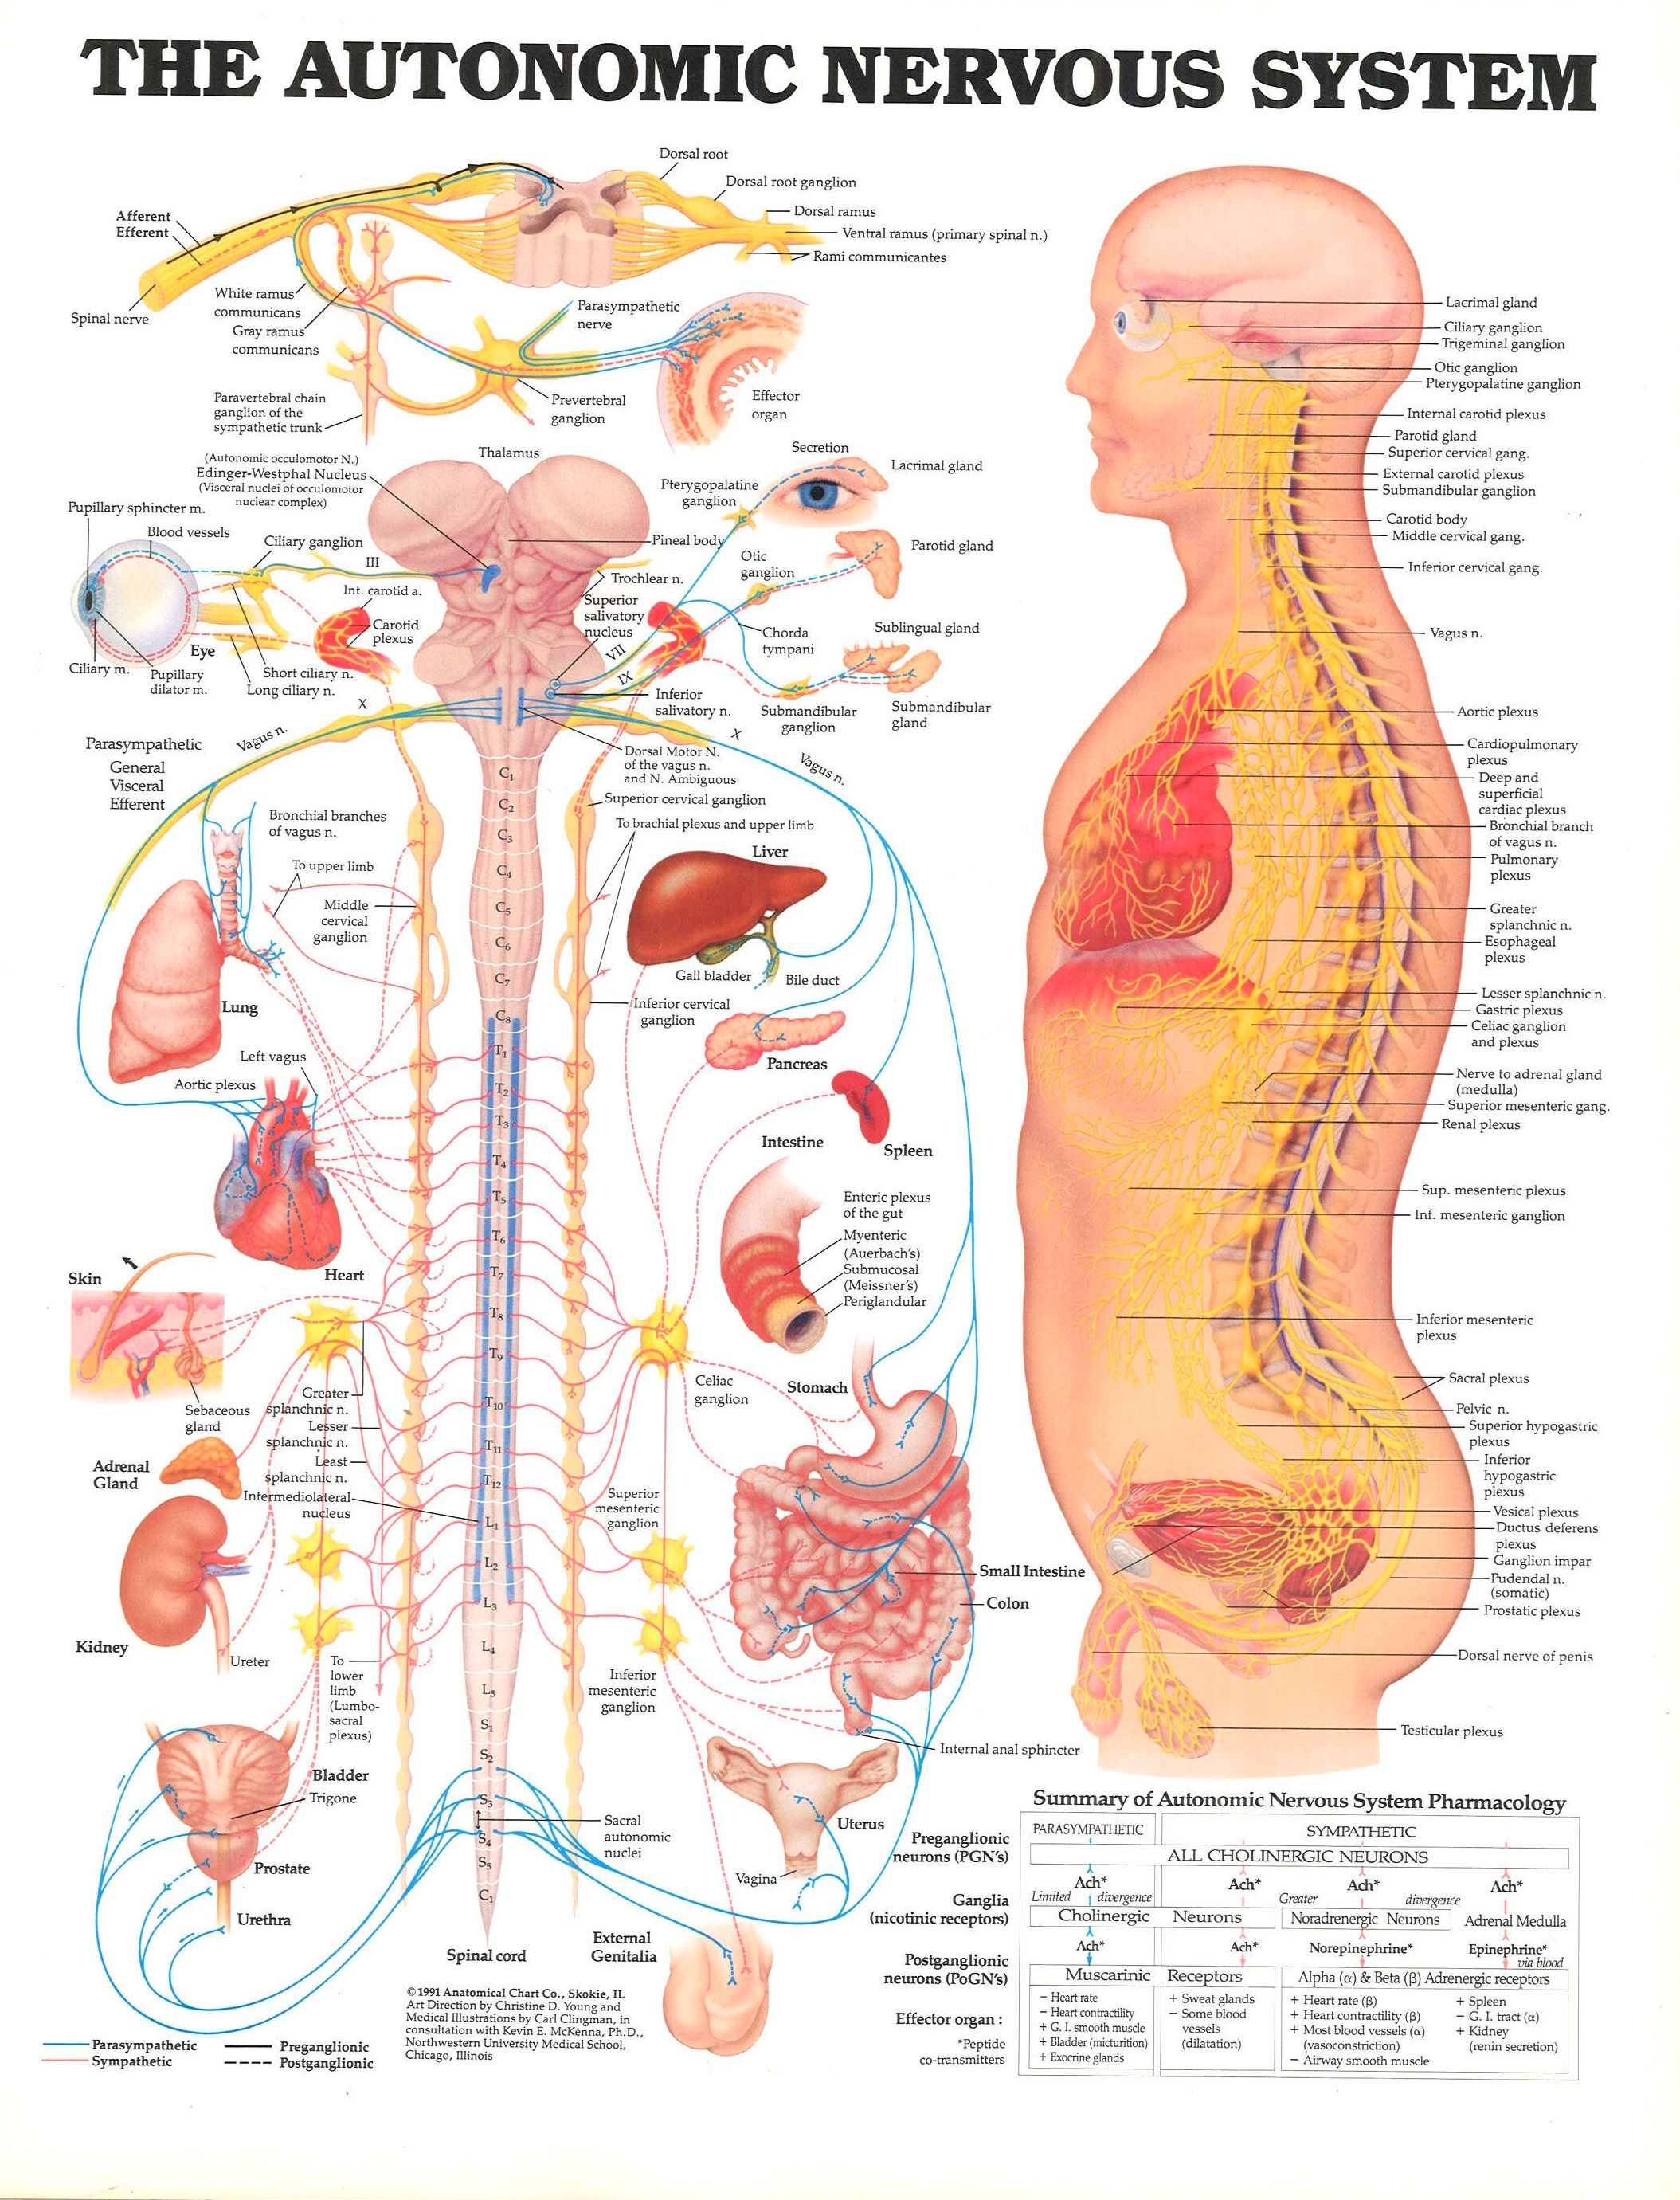 the autonomic nervous system | the-autonomic-nervous-system.jpg ...